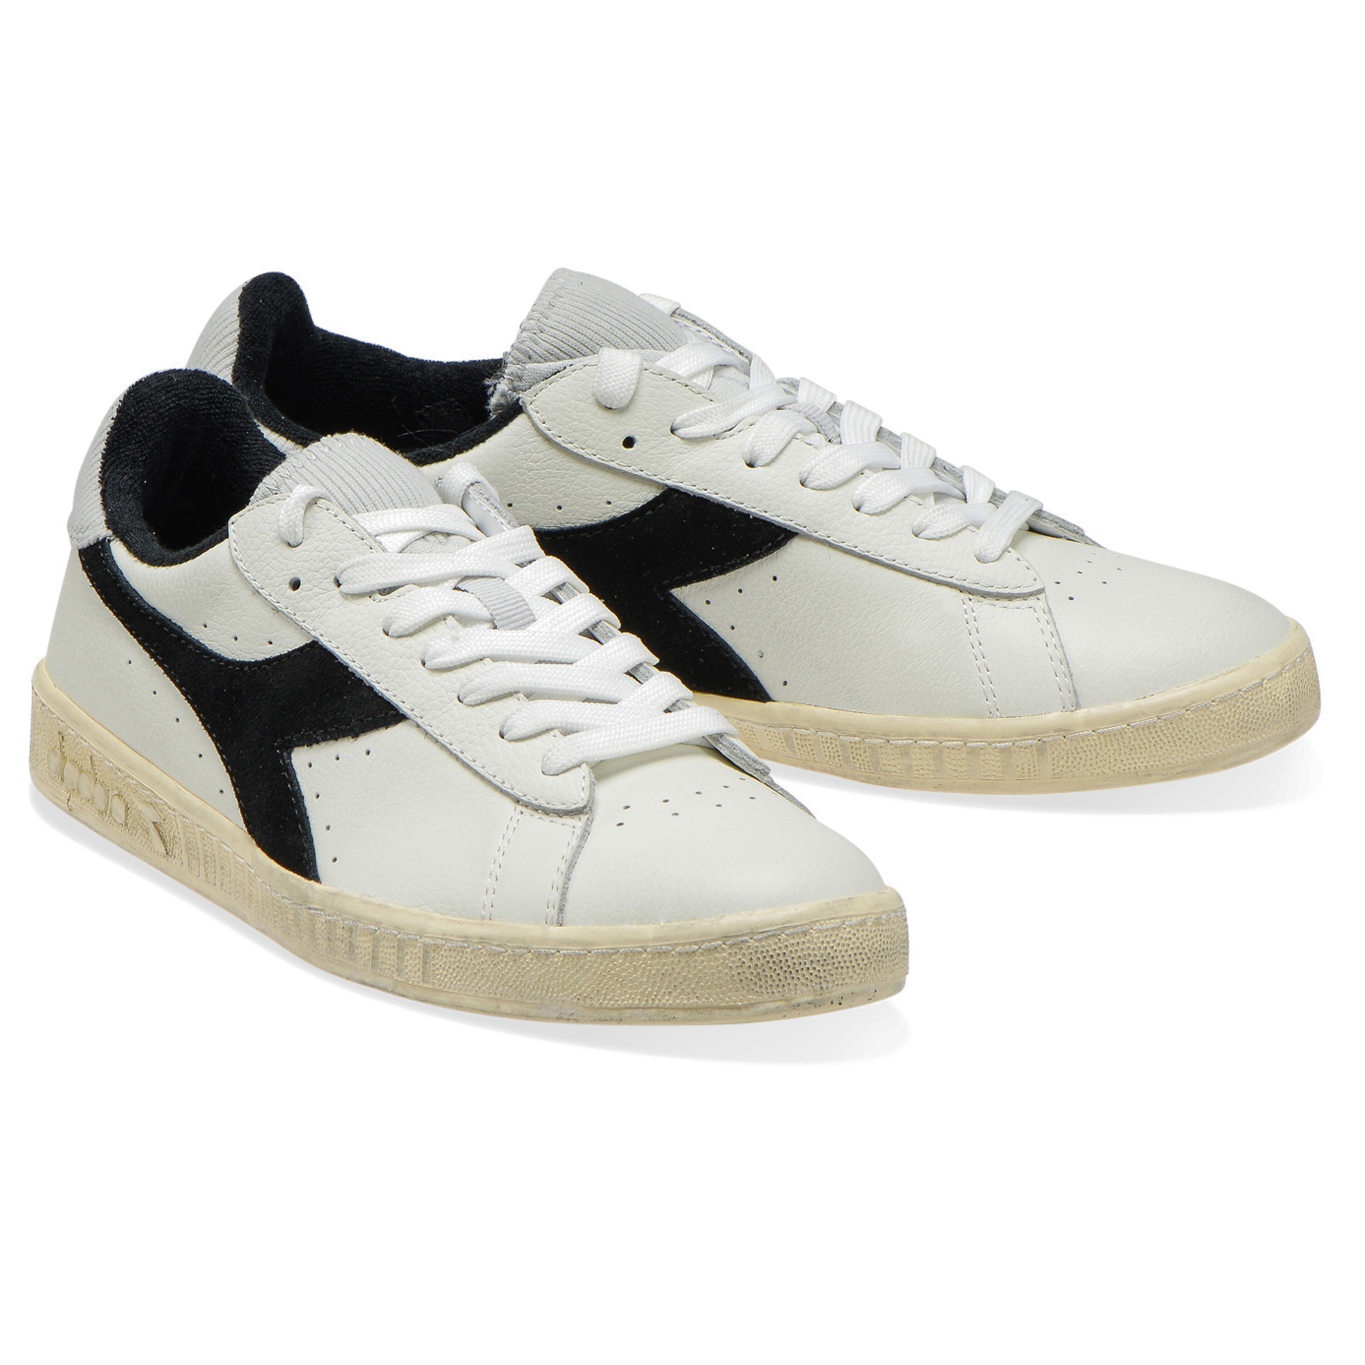 Negozio di sconti online,Diadora Game Low Used